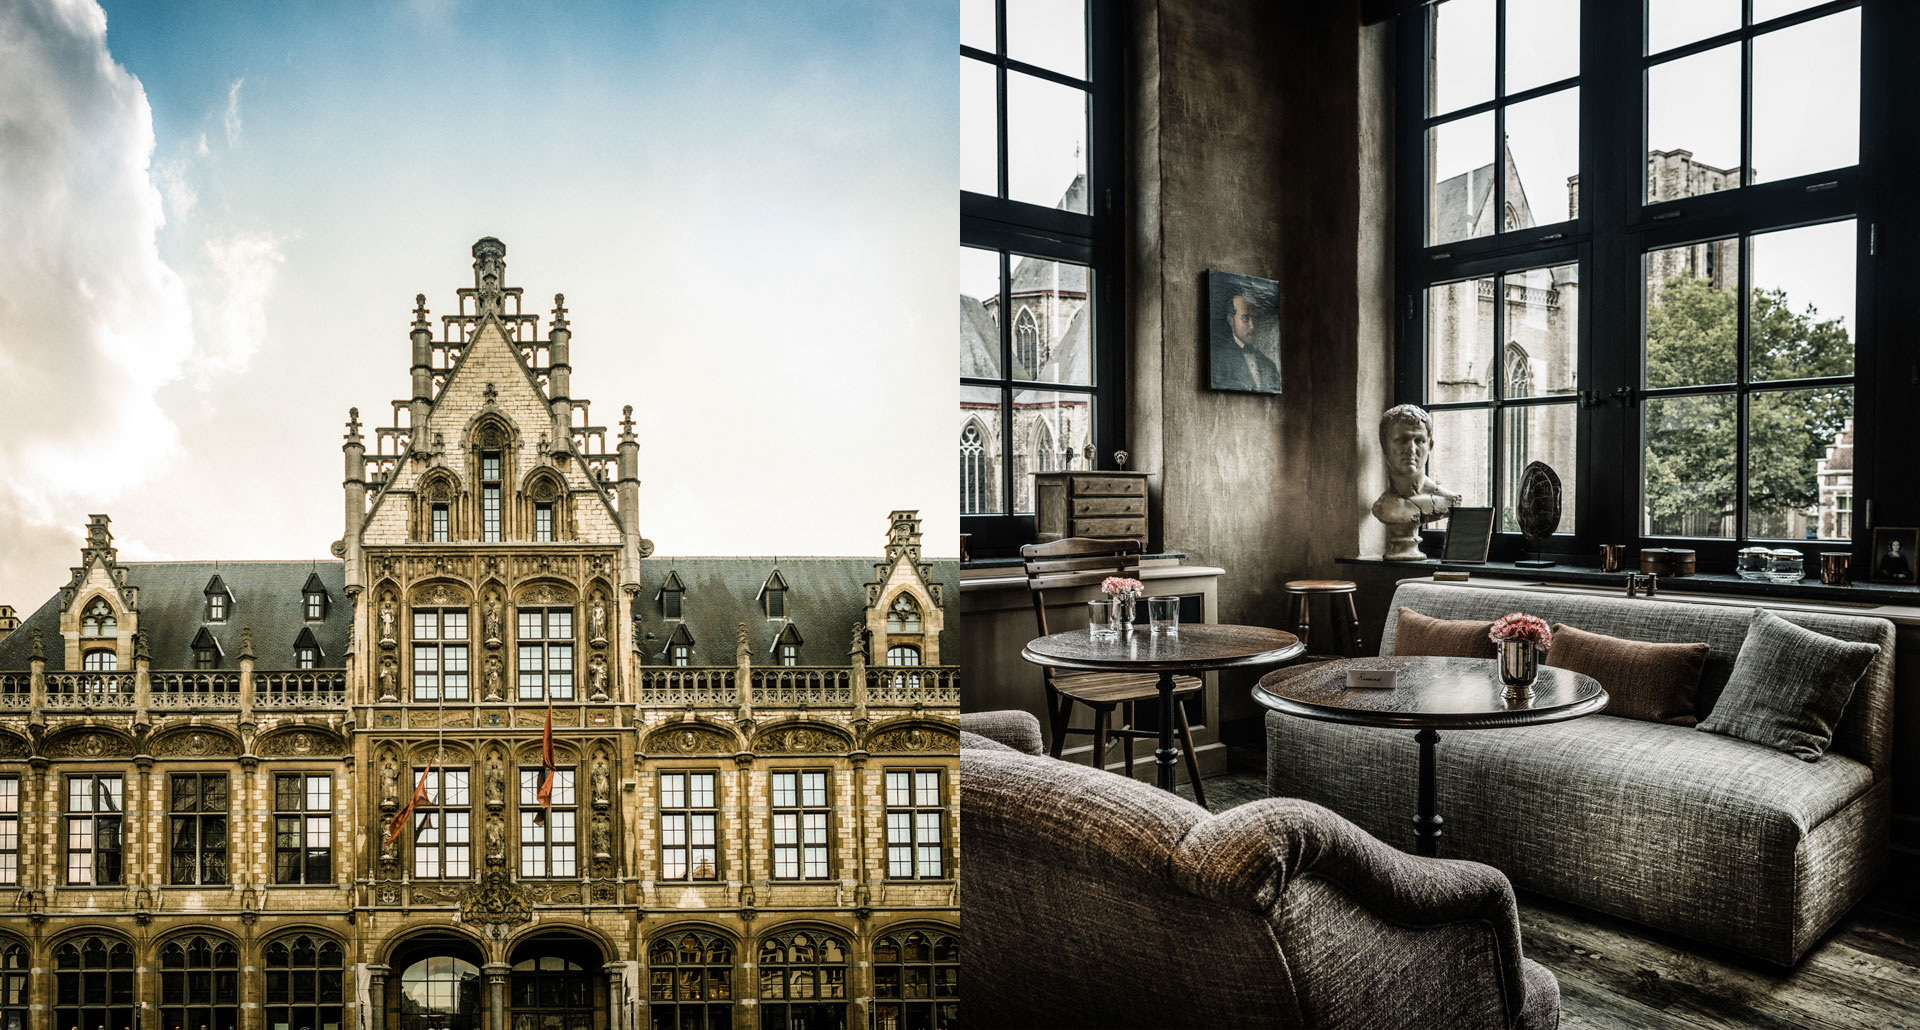 1898 The Post boutique hotel in Gent, Belgium